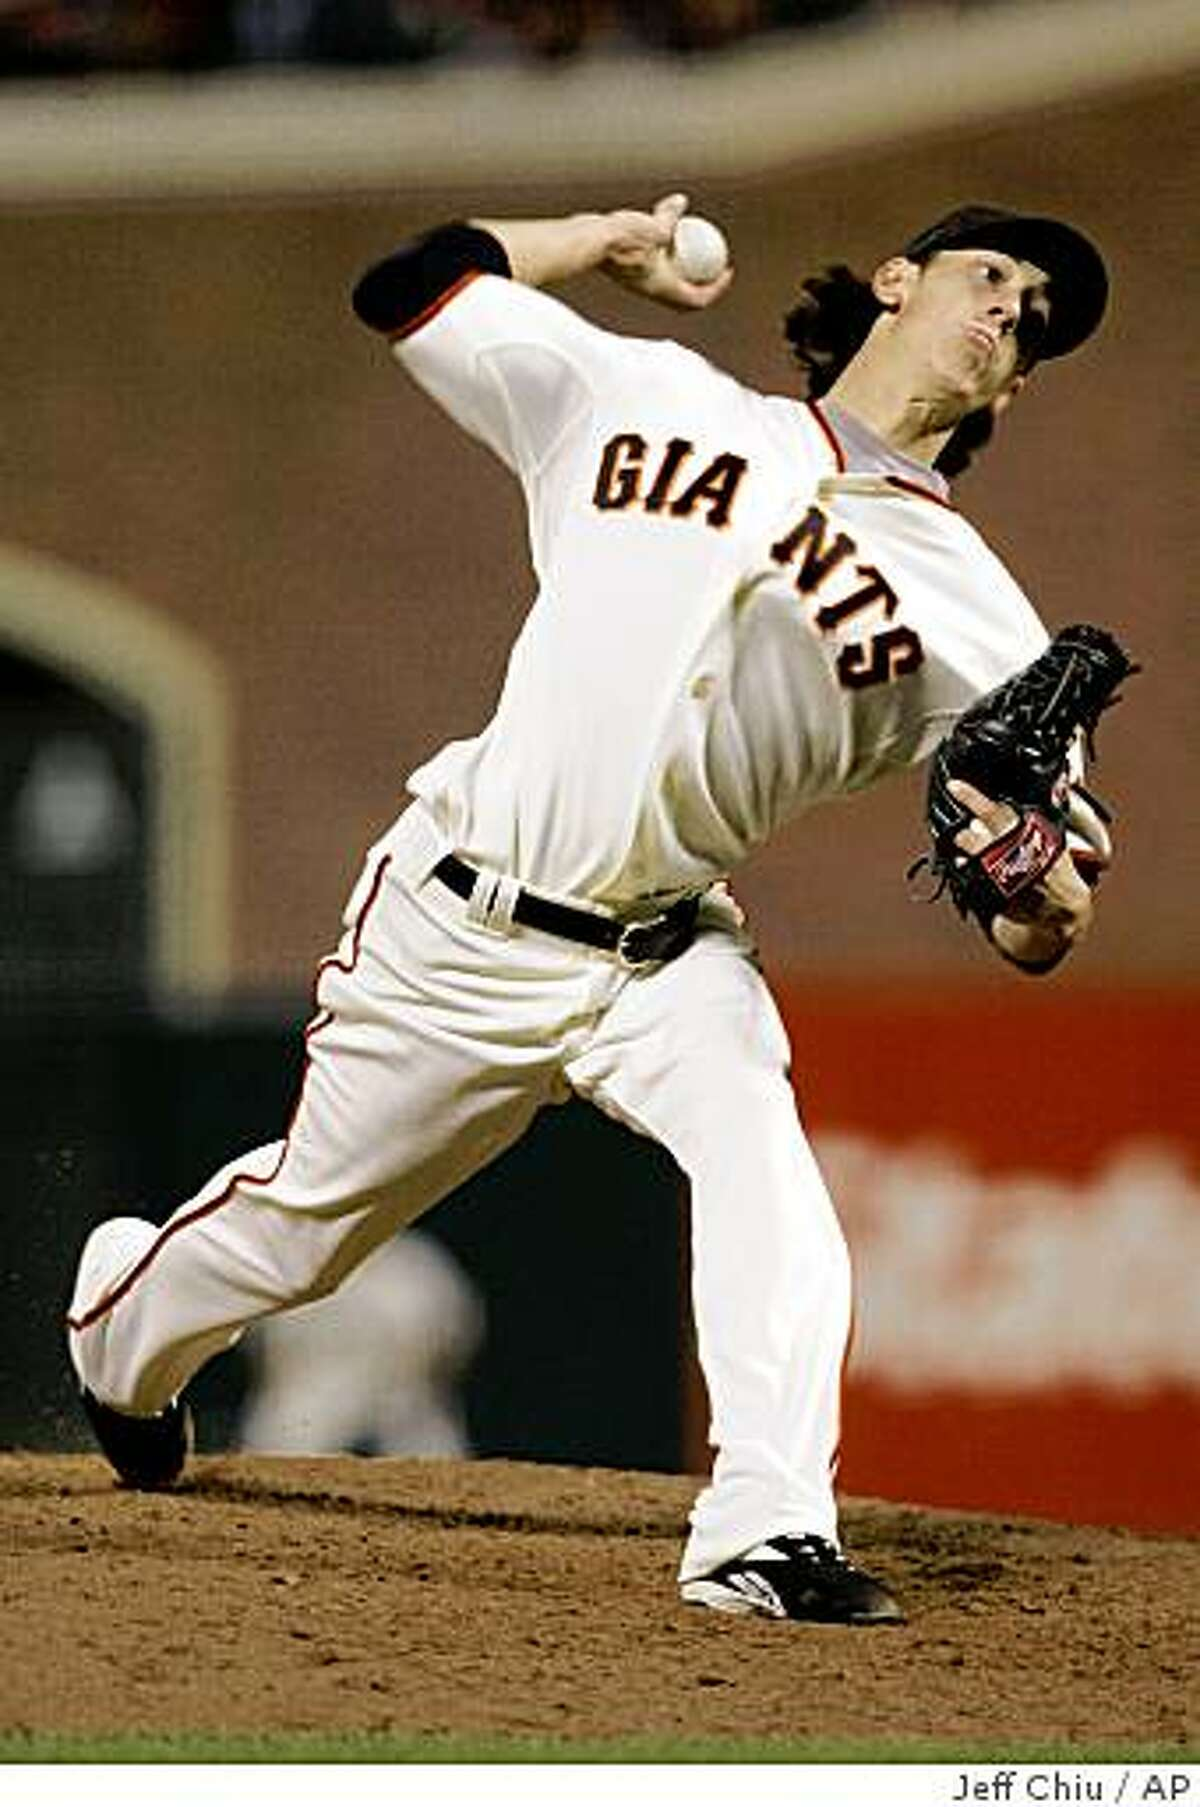 San Francisco Giants' Tim Lincecum pitches to the Los Angeles Dodgers in the fifth inning of a baseball game in San Francisco, Wednesday, April 29, 2009. (AP Photo/Jeff Chiu)